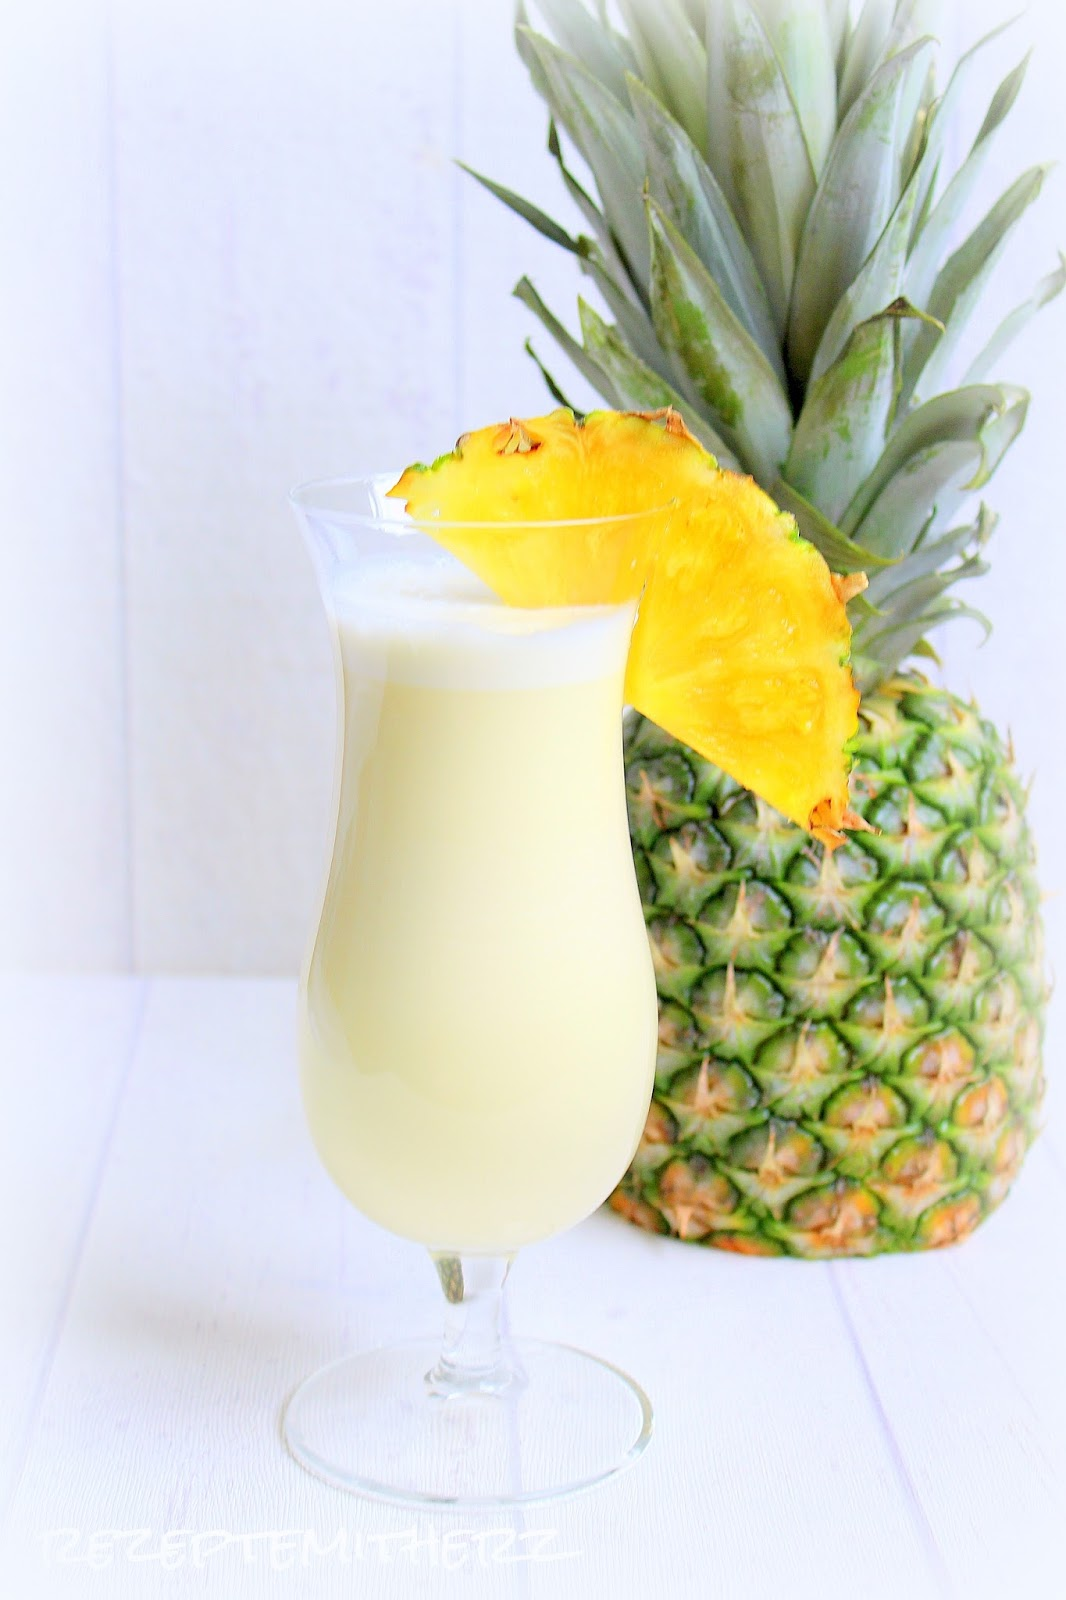 Pina colada cocktail rezept  Pina Colada Cocktail, Thermomix Rezept